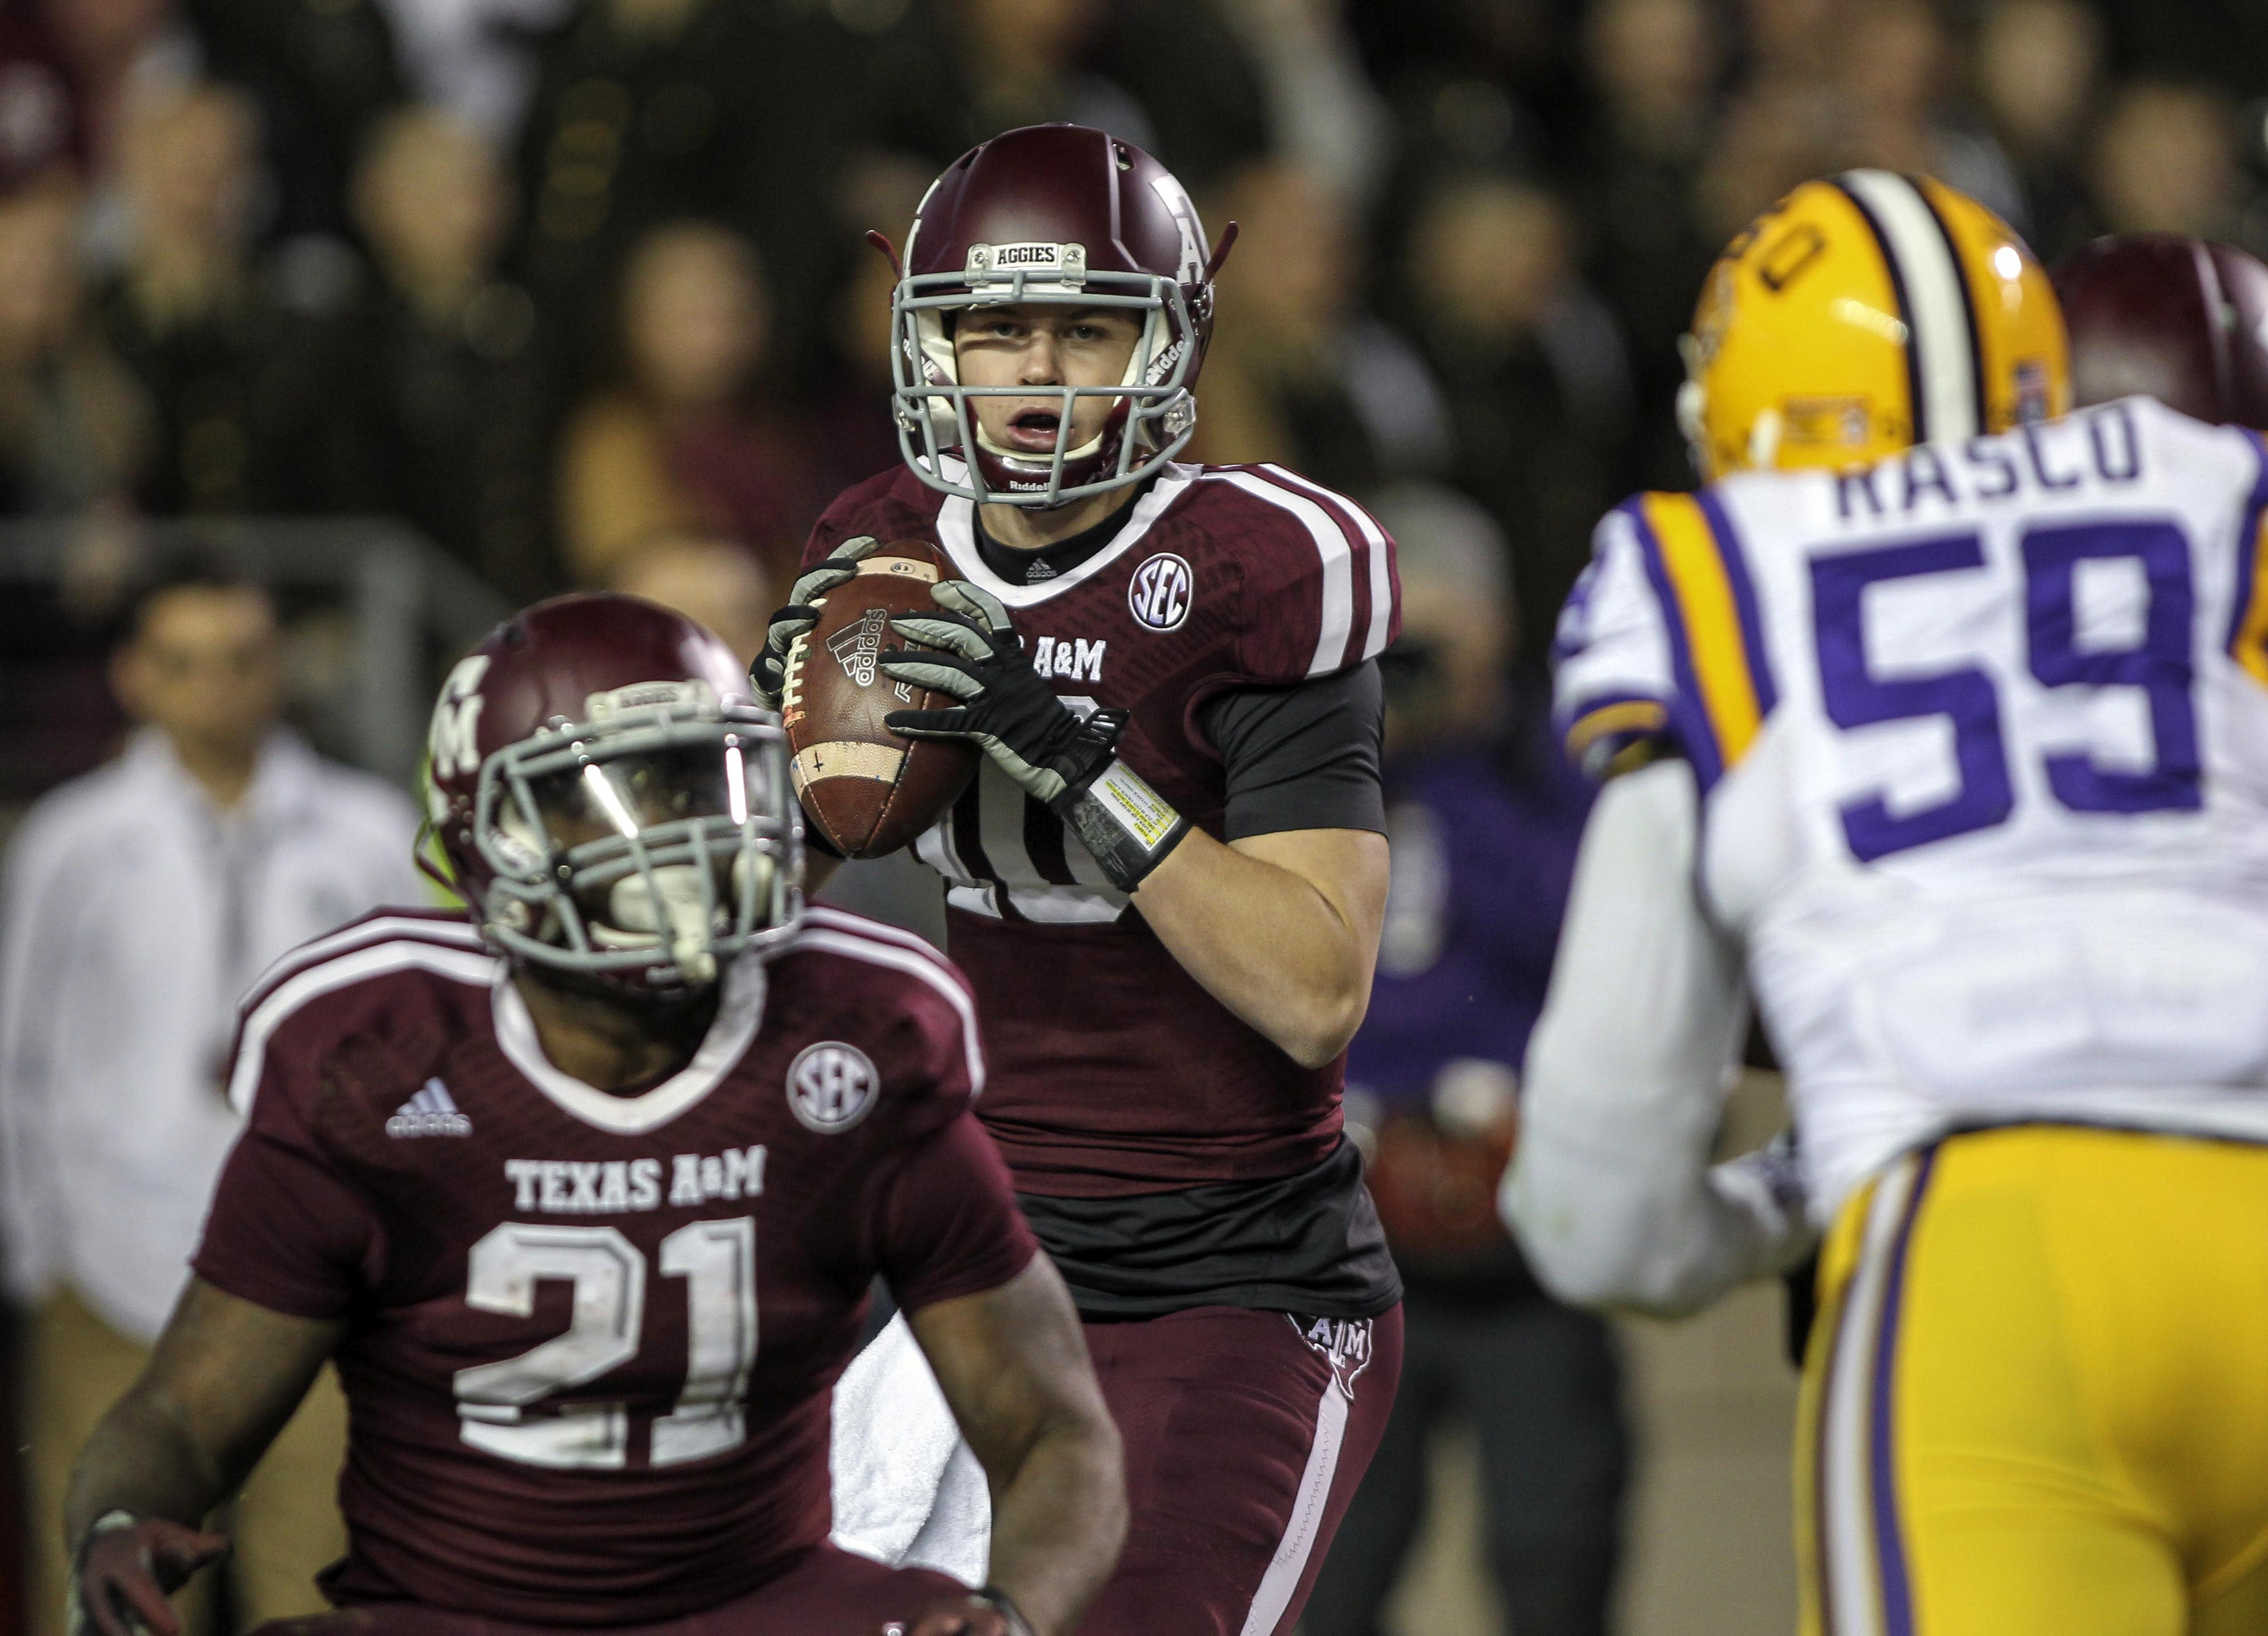 Liberty Bowl: West Virginia and Texas A&M should throw the ball a lot